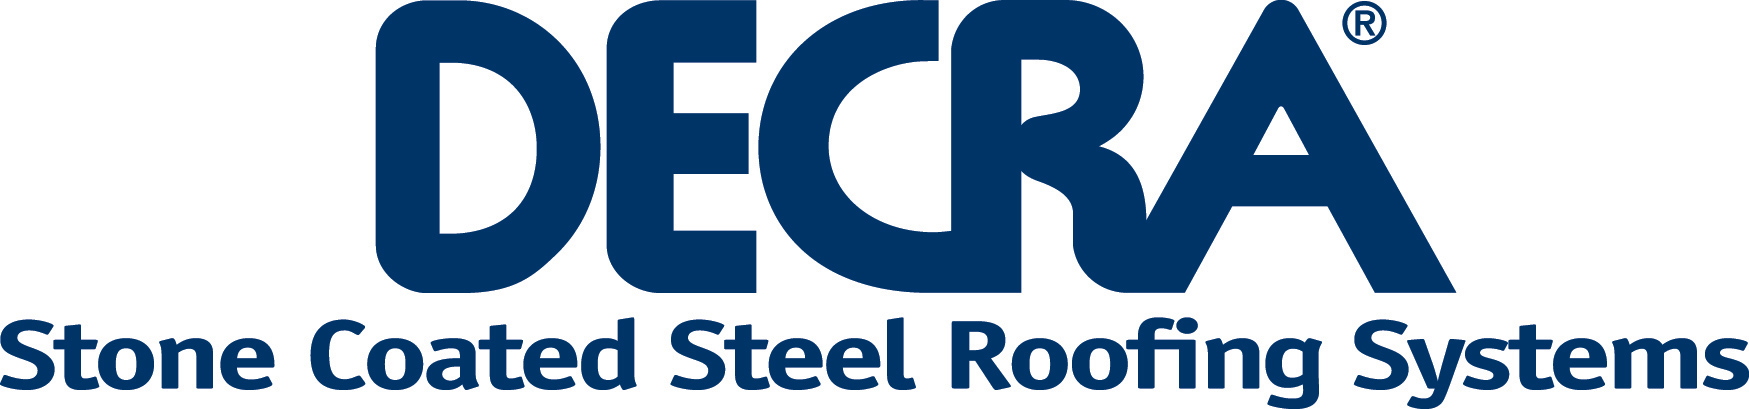 DECRA Stone Coated Steel Roofing Systems